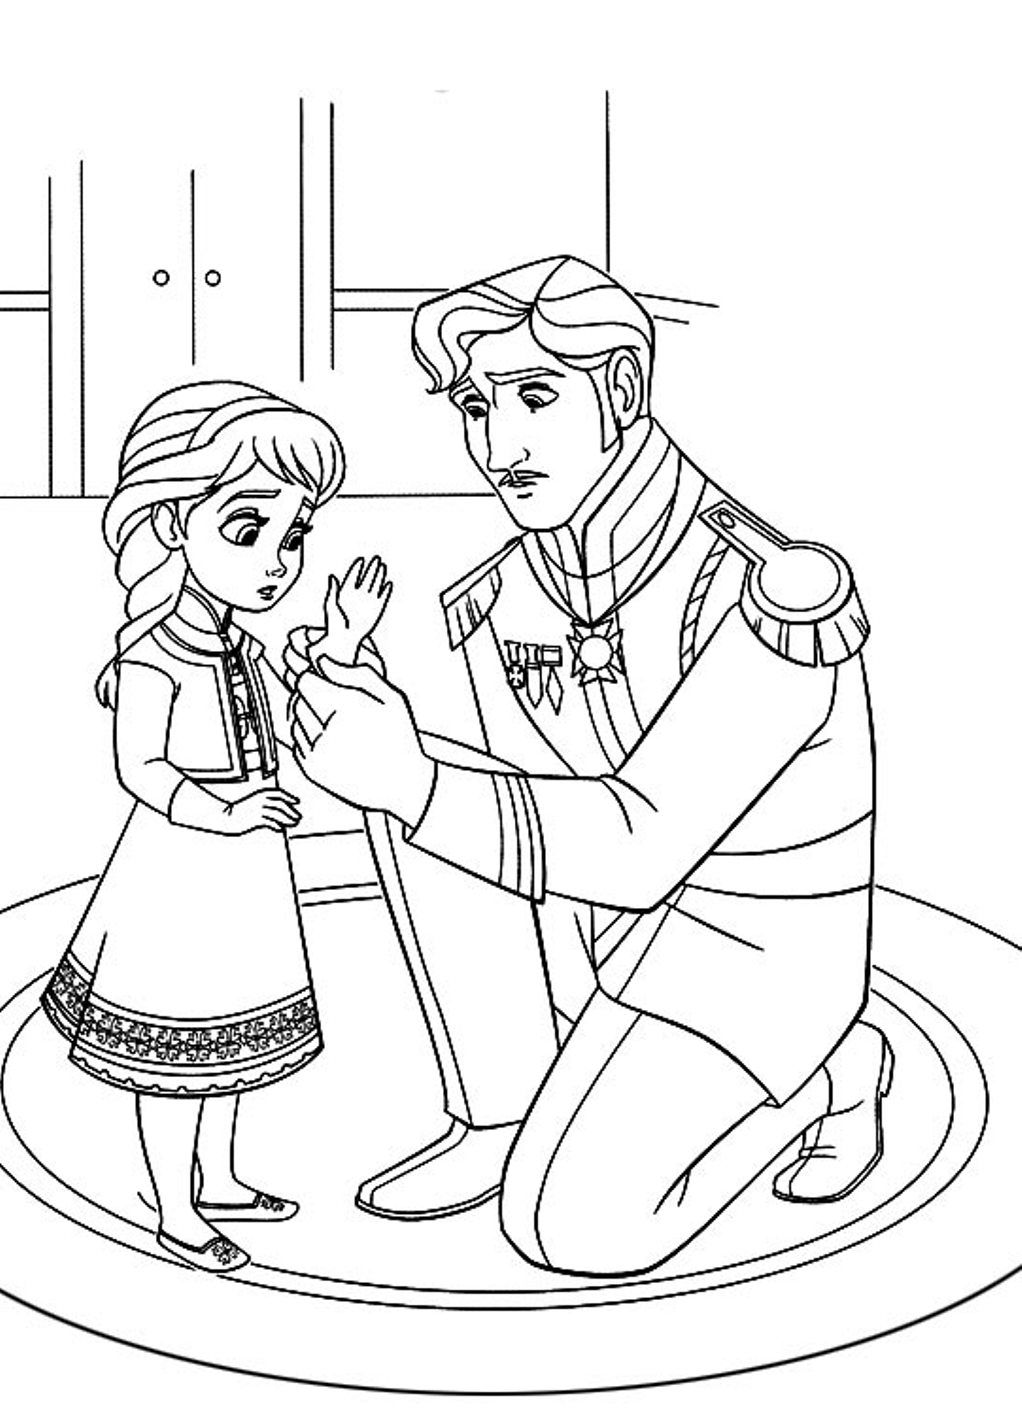 Frozen Coloring Pages At Getdrawings Com Free For Personal Use